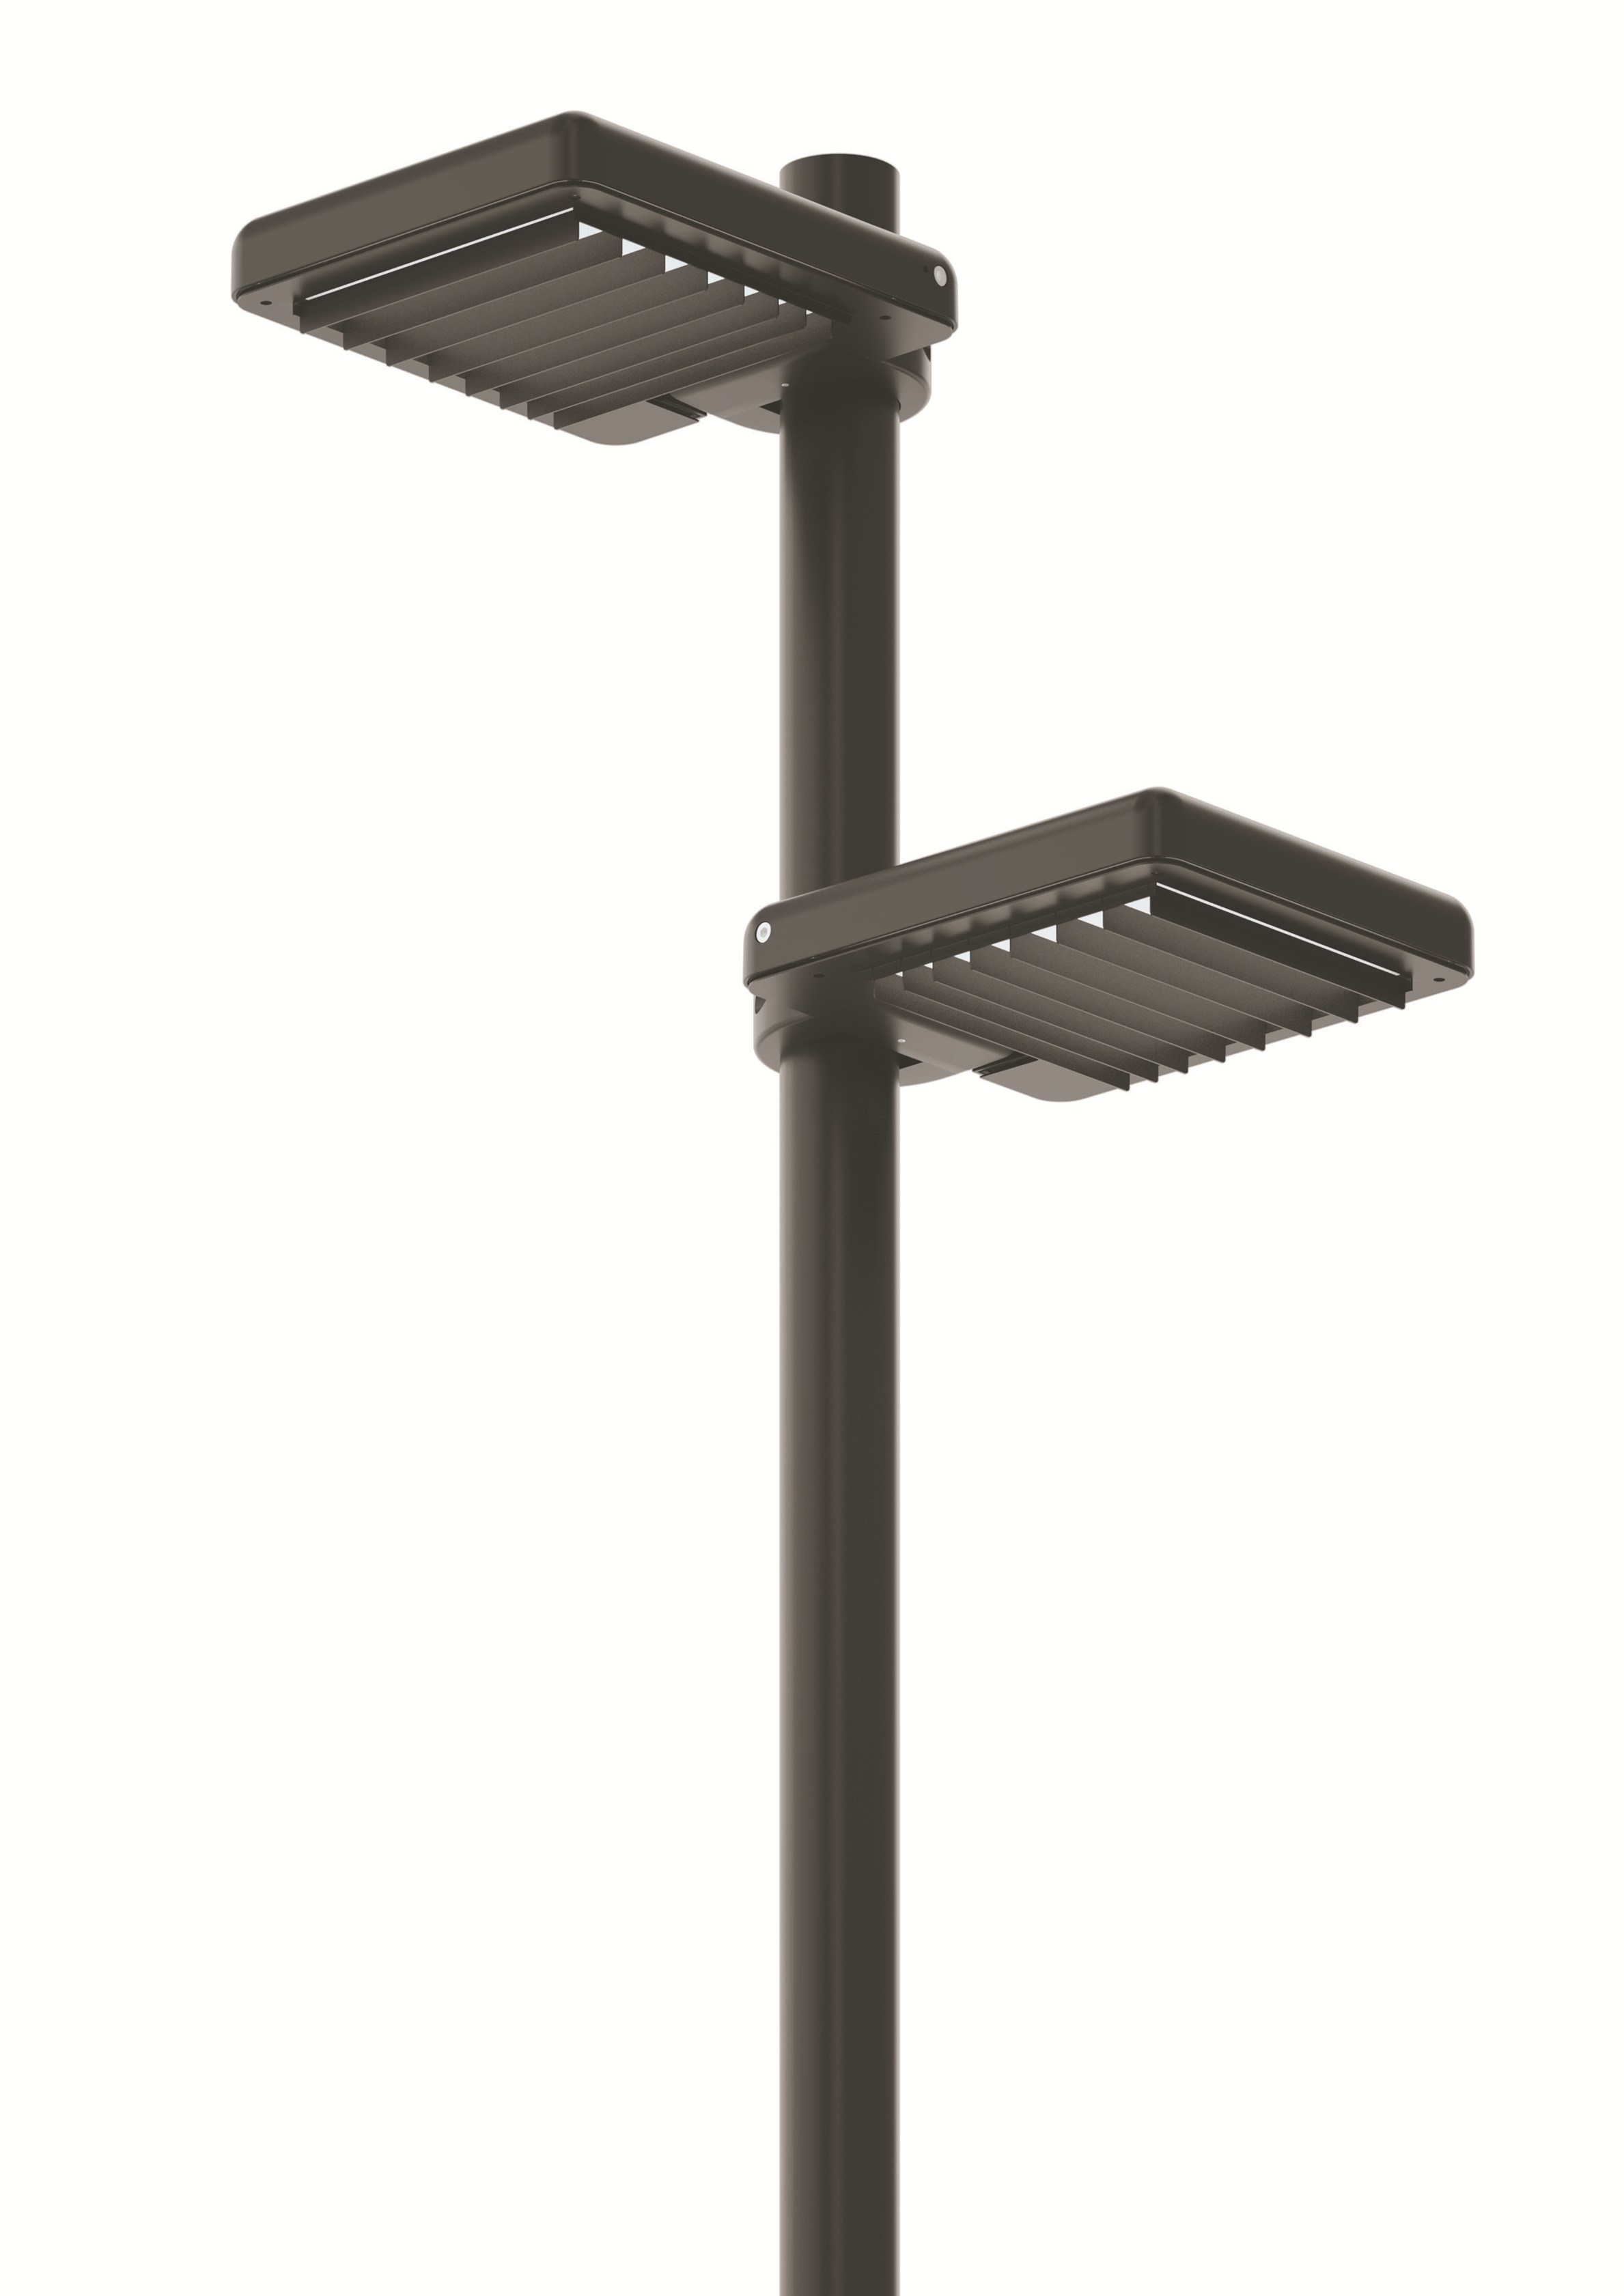 Proiettore per esterno a led orientabile vuelta x by linea for Led esterno